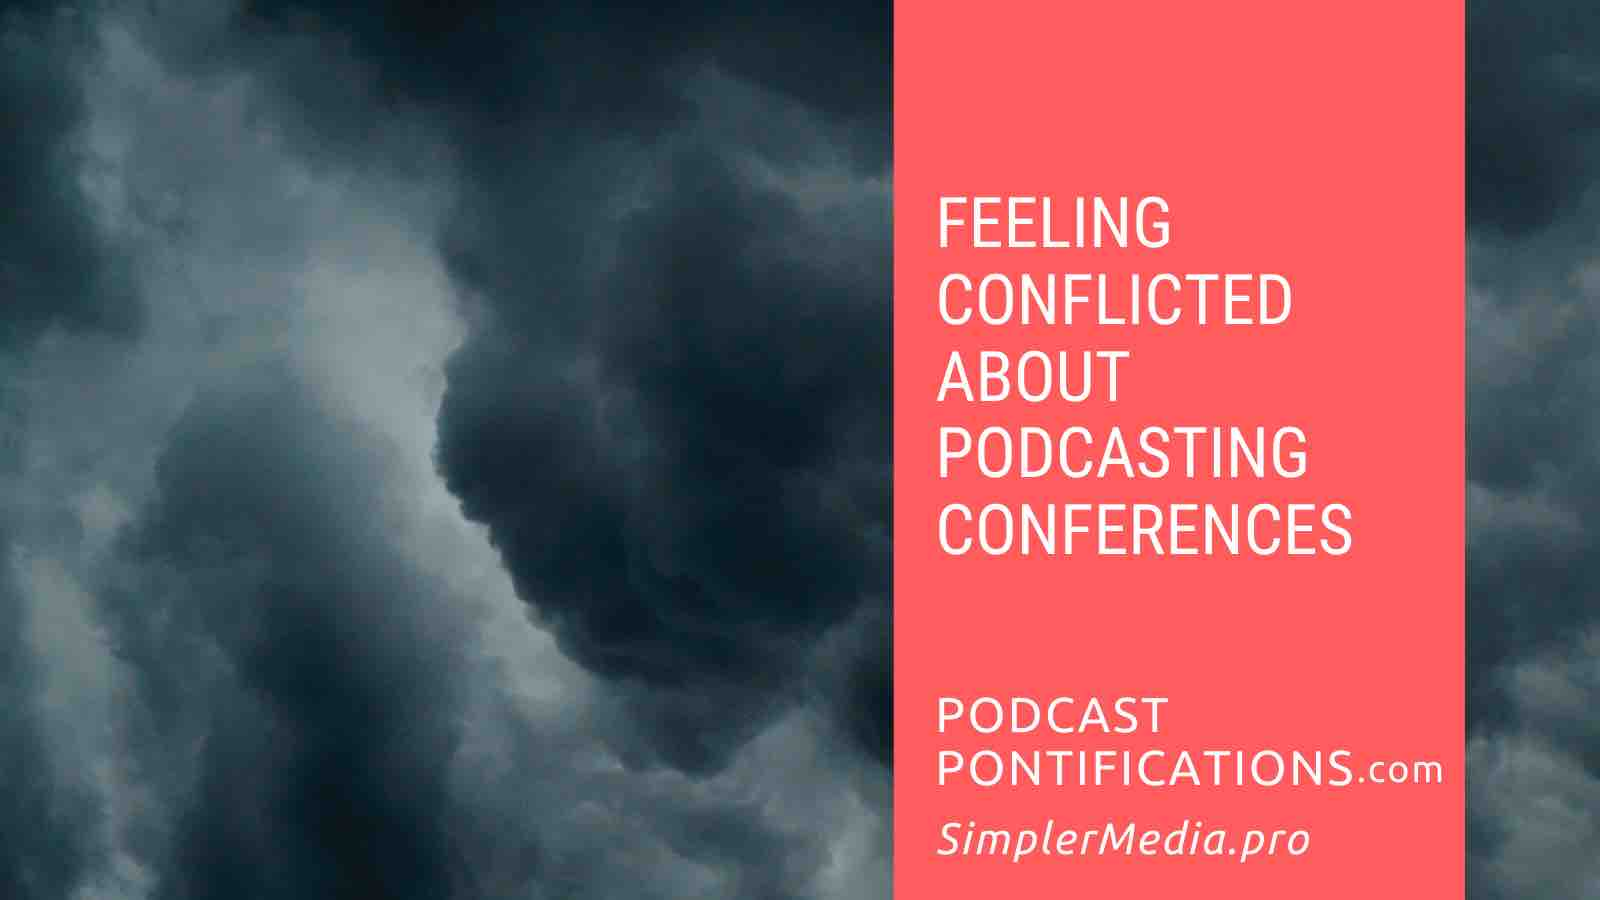 Feeling Conflicted About Podcasting Conferences